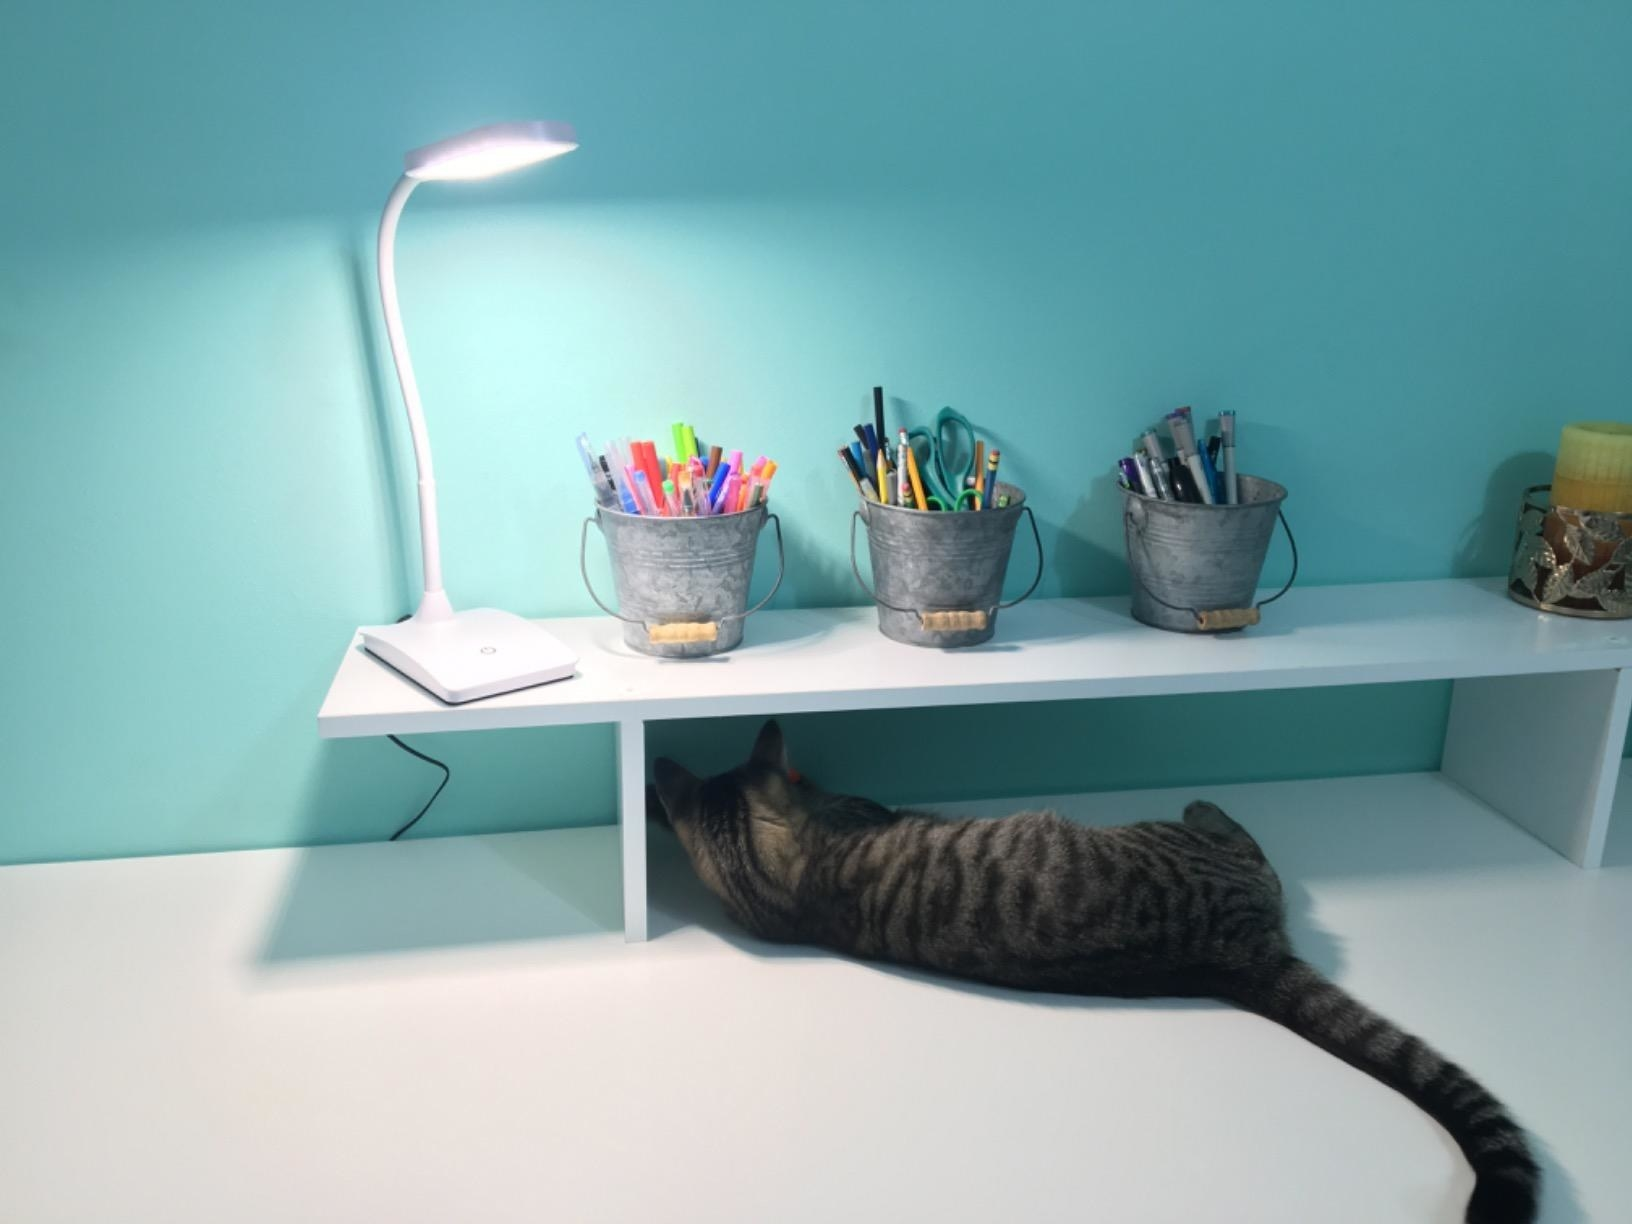 A white desk lamp with a sloped bending stand